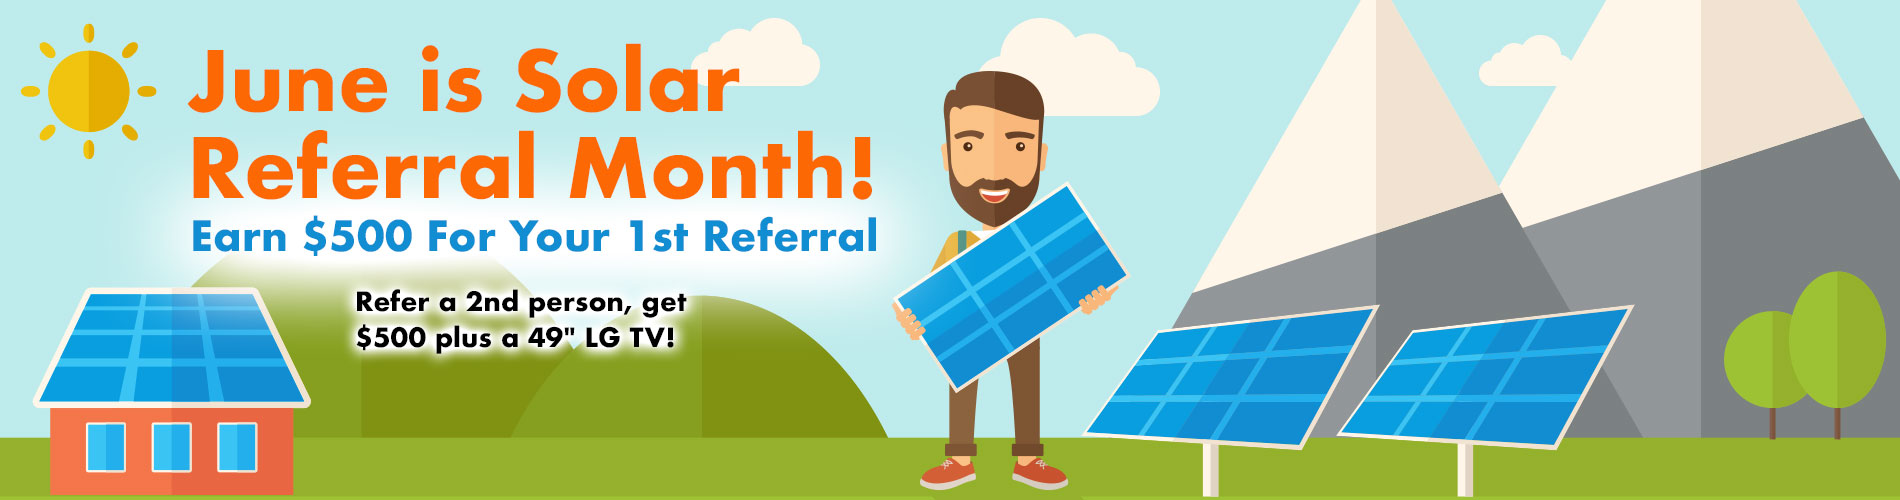 June Solar Referral Month Campaign Banner